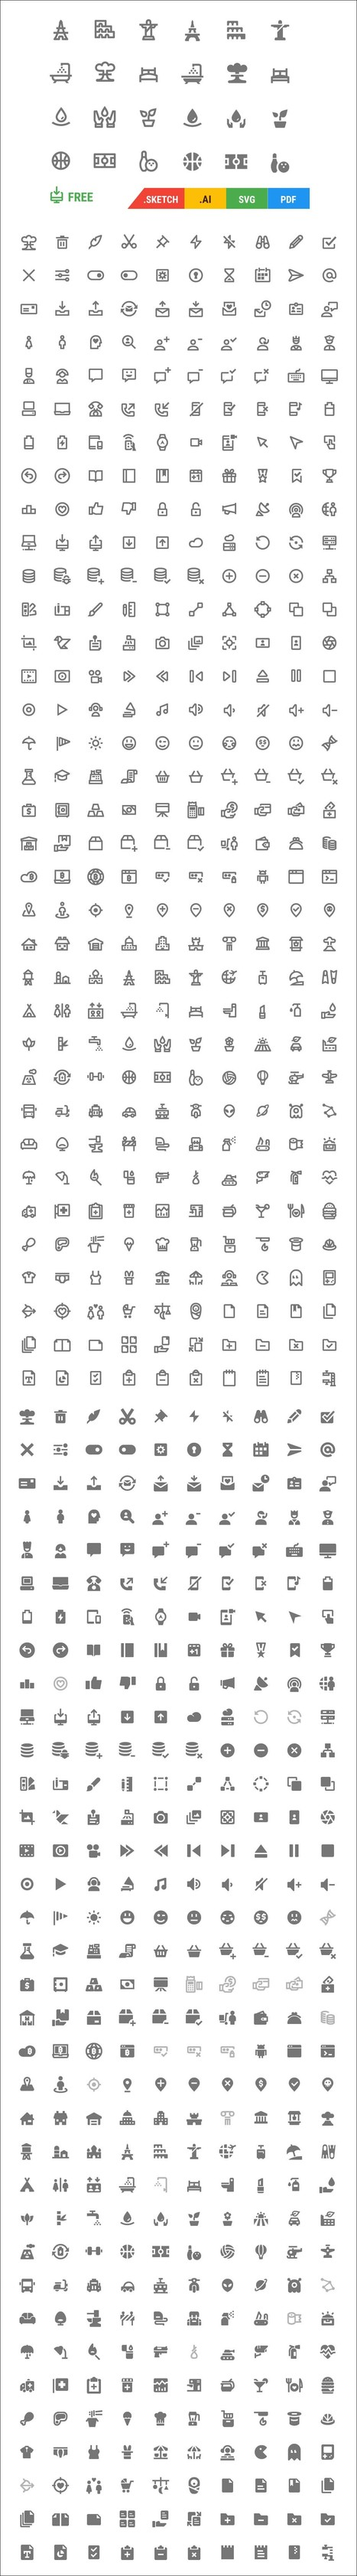 Nova 350+ Free Vector Icon Set | Designrazzi | Designrazzi | Scoop.it